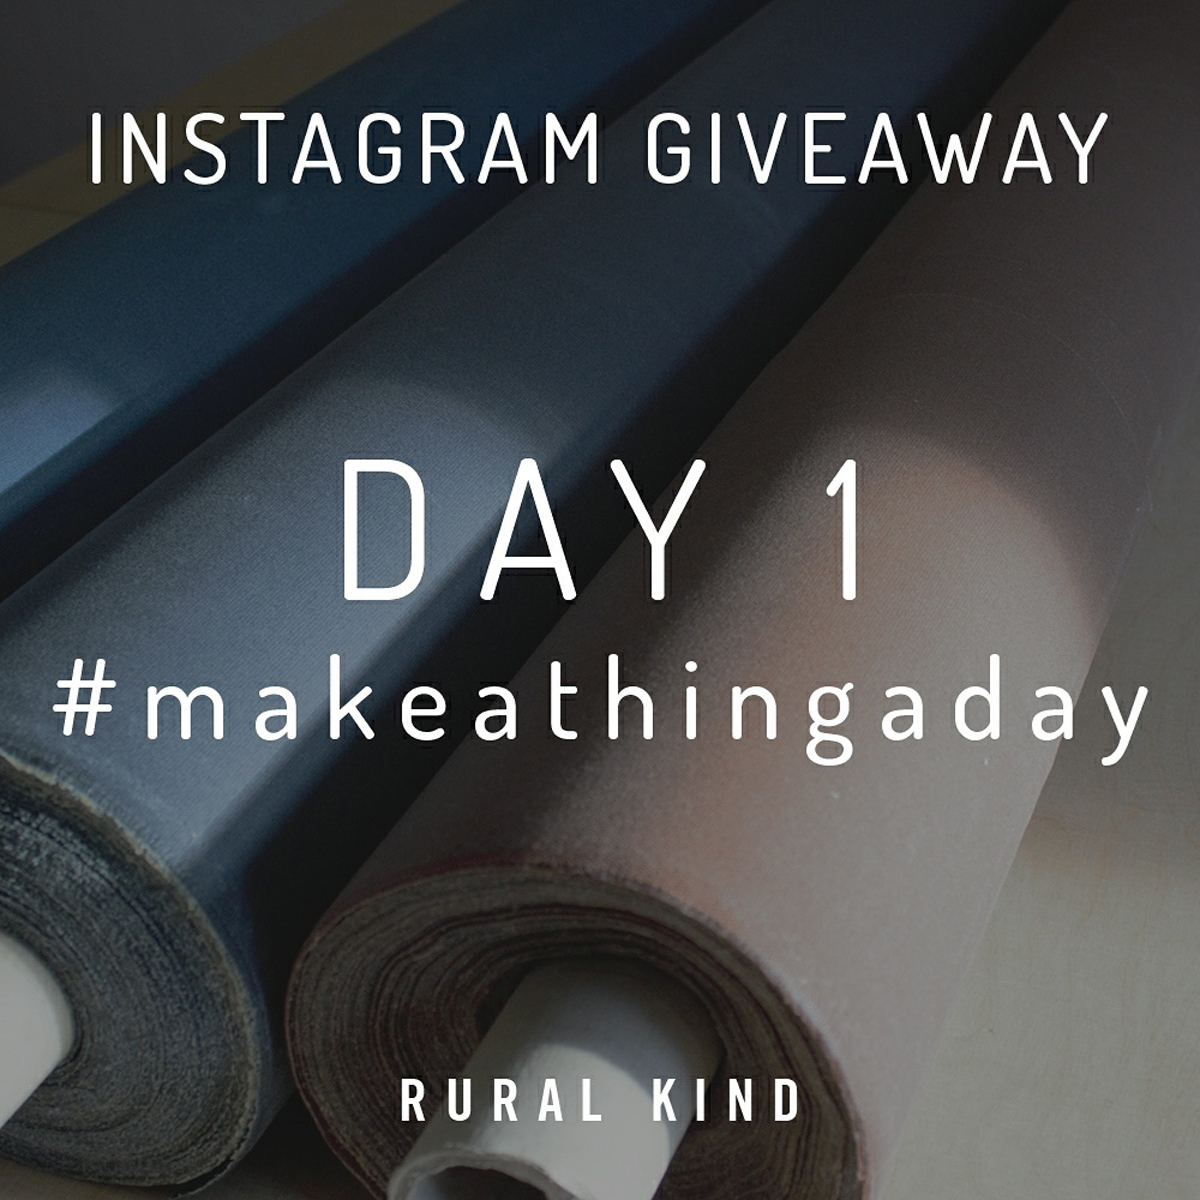 So lets get going!...every day this week (Mon-Fri) we are designing and making a small unique product for one of you to win! Today we will be starting with a small foraging type bag. Time to get sketching!